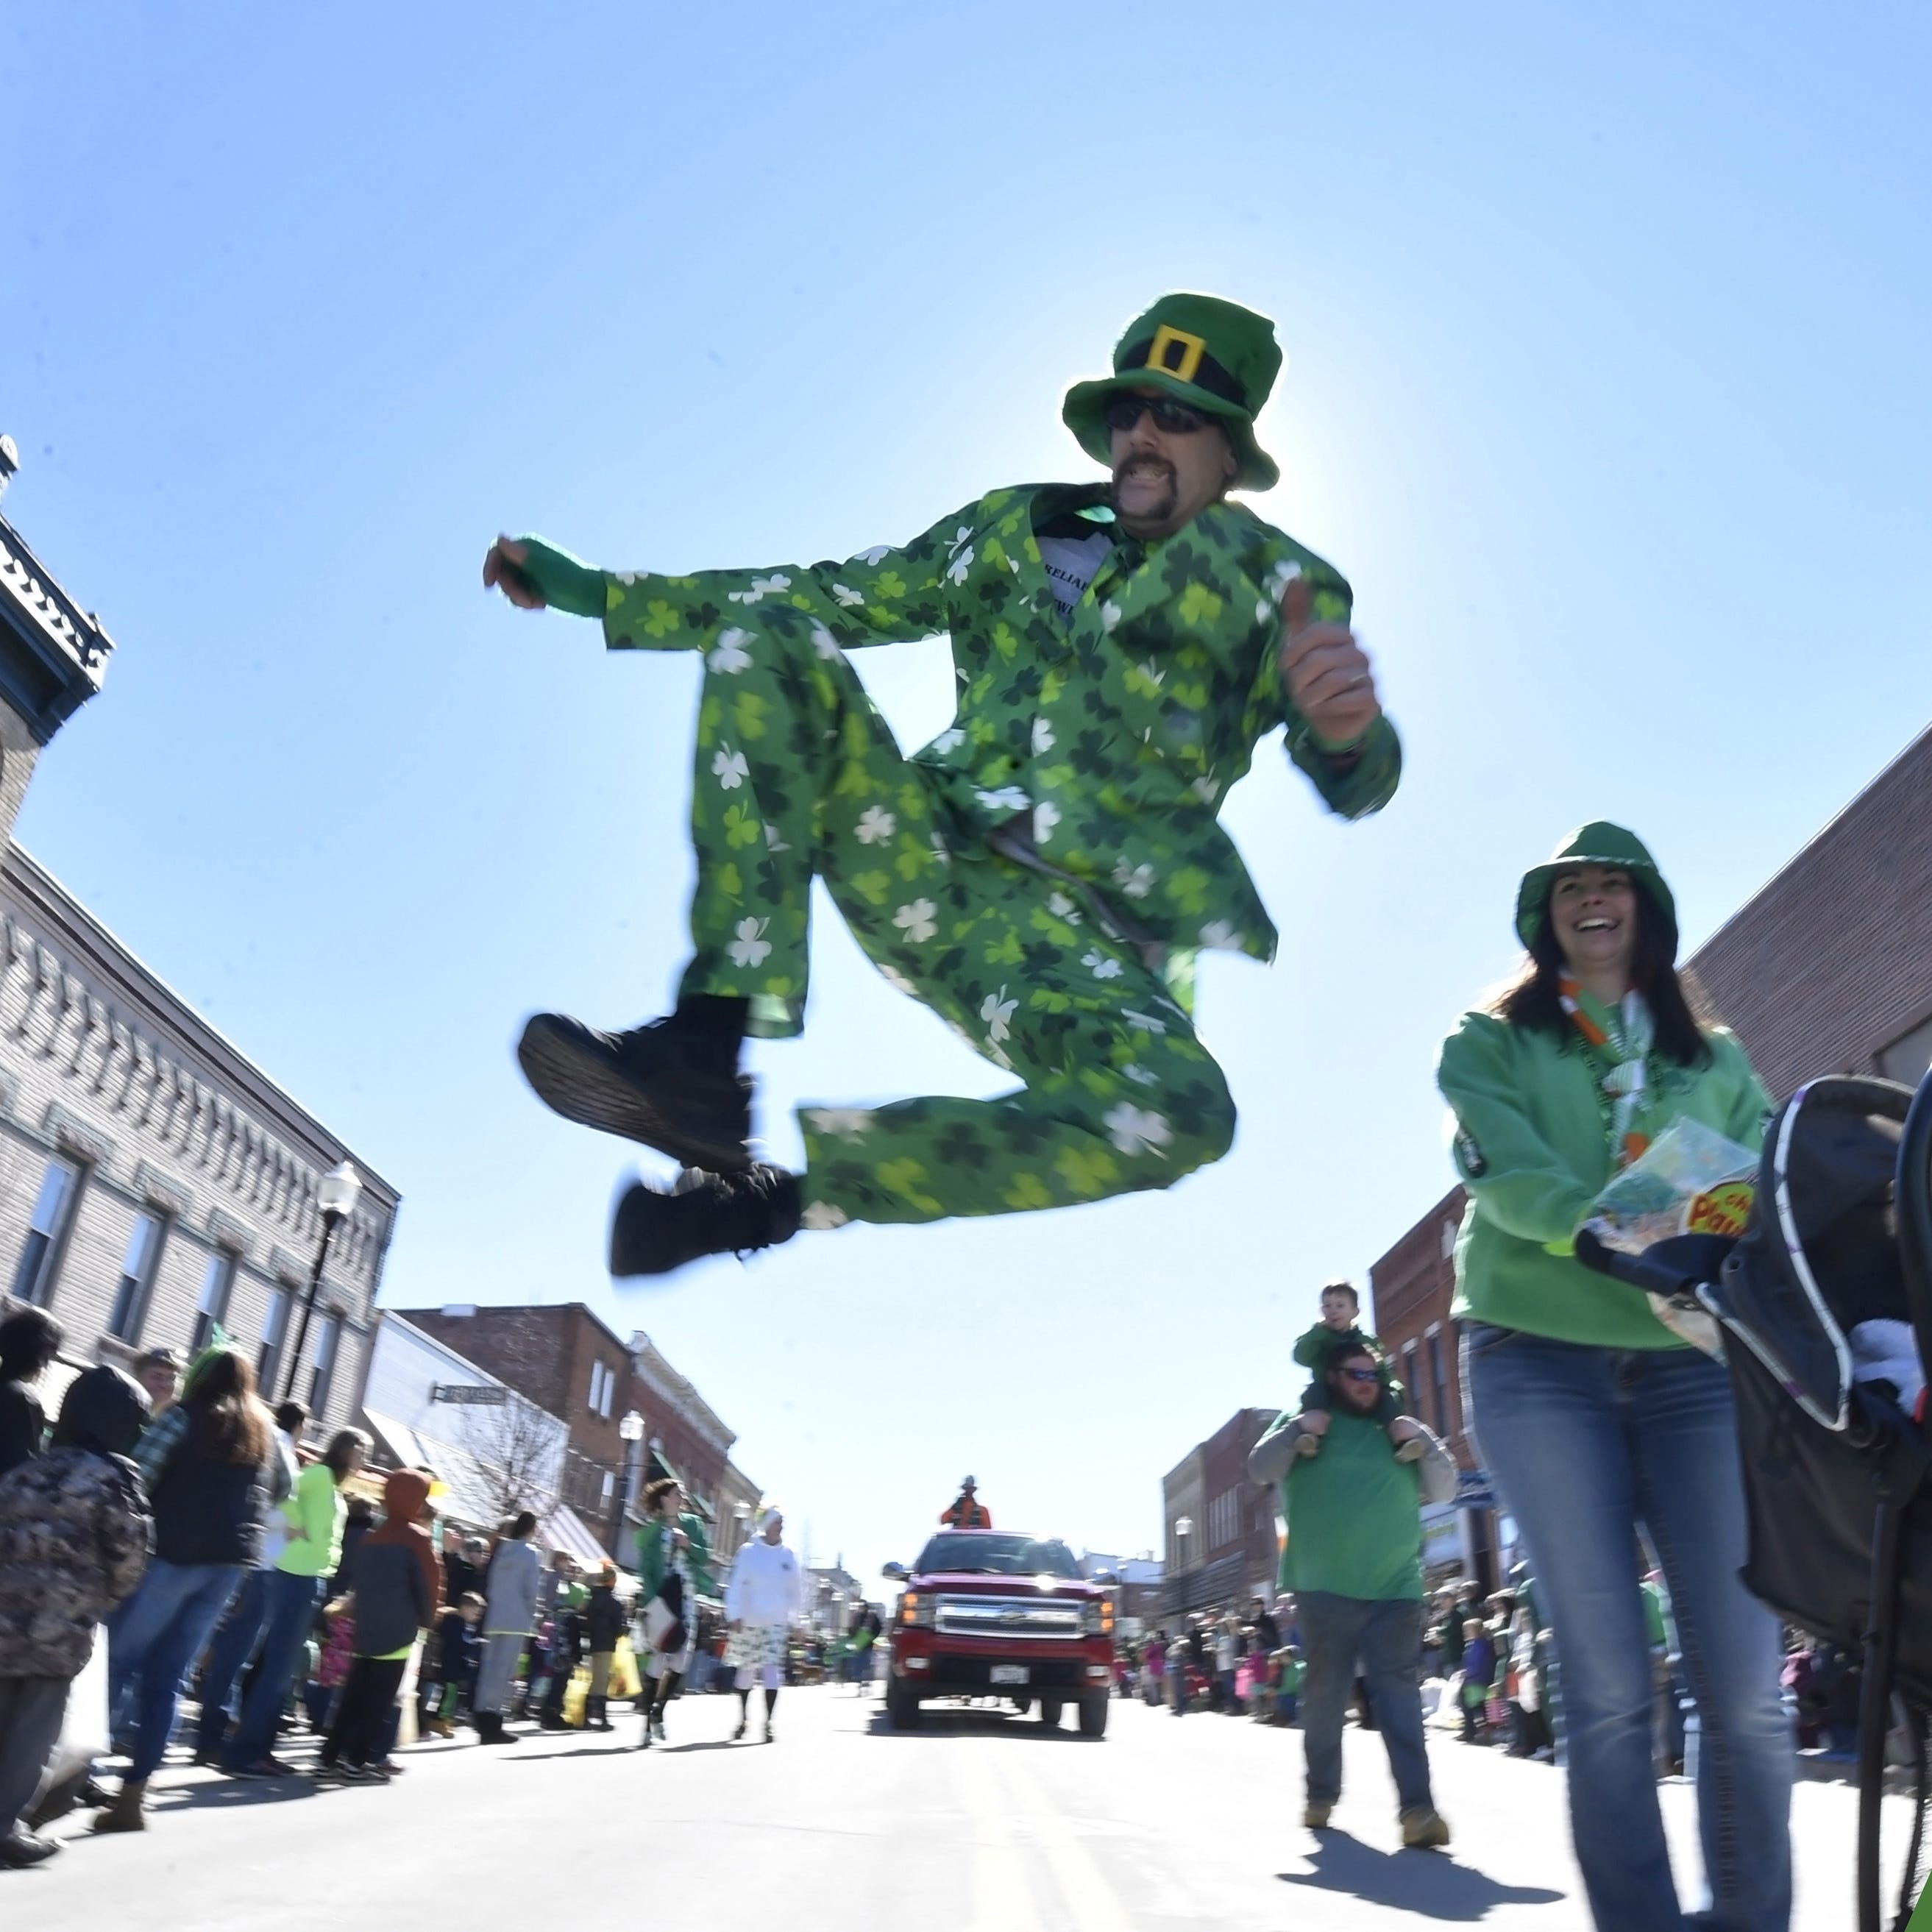 St. Patrick's Day Parade returns to Sturgeon Bay for 26th year